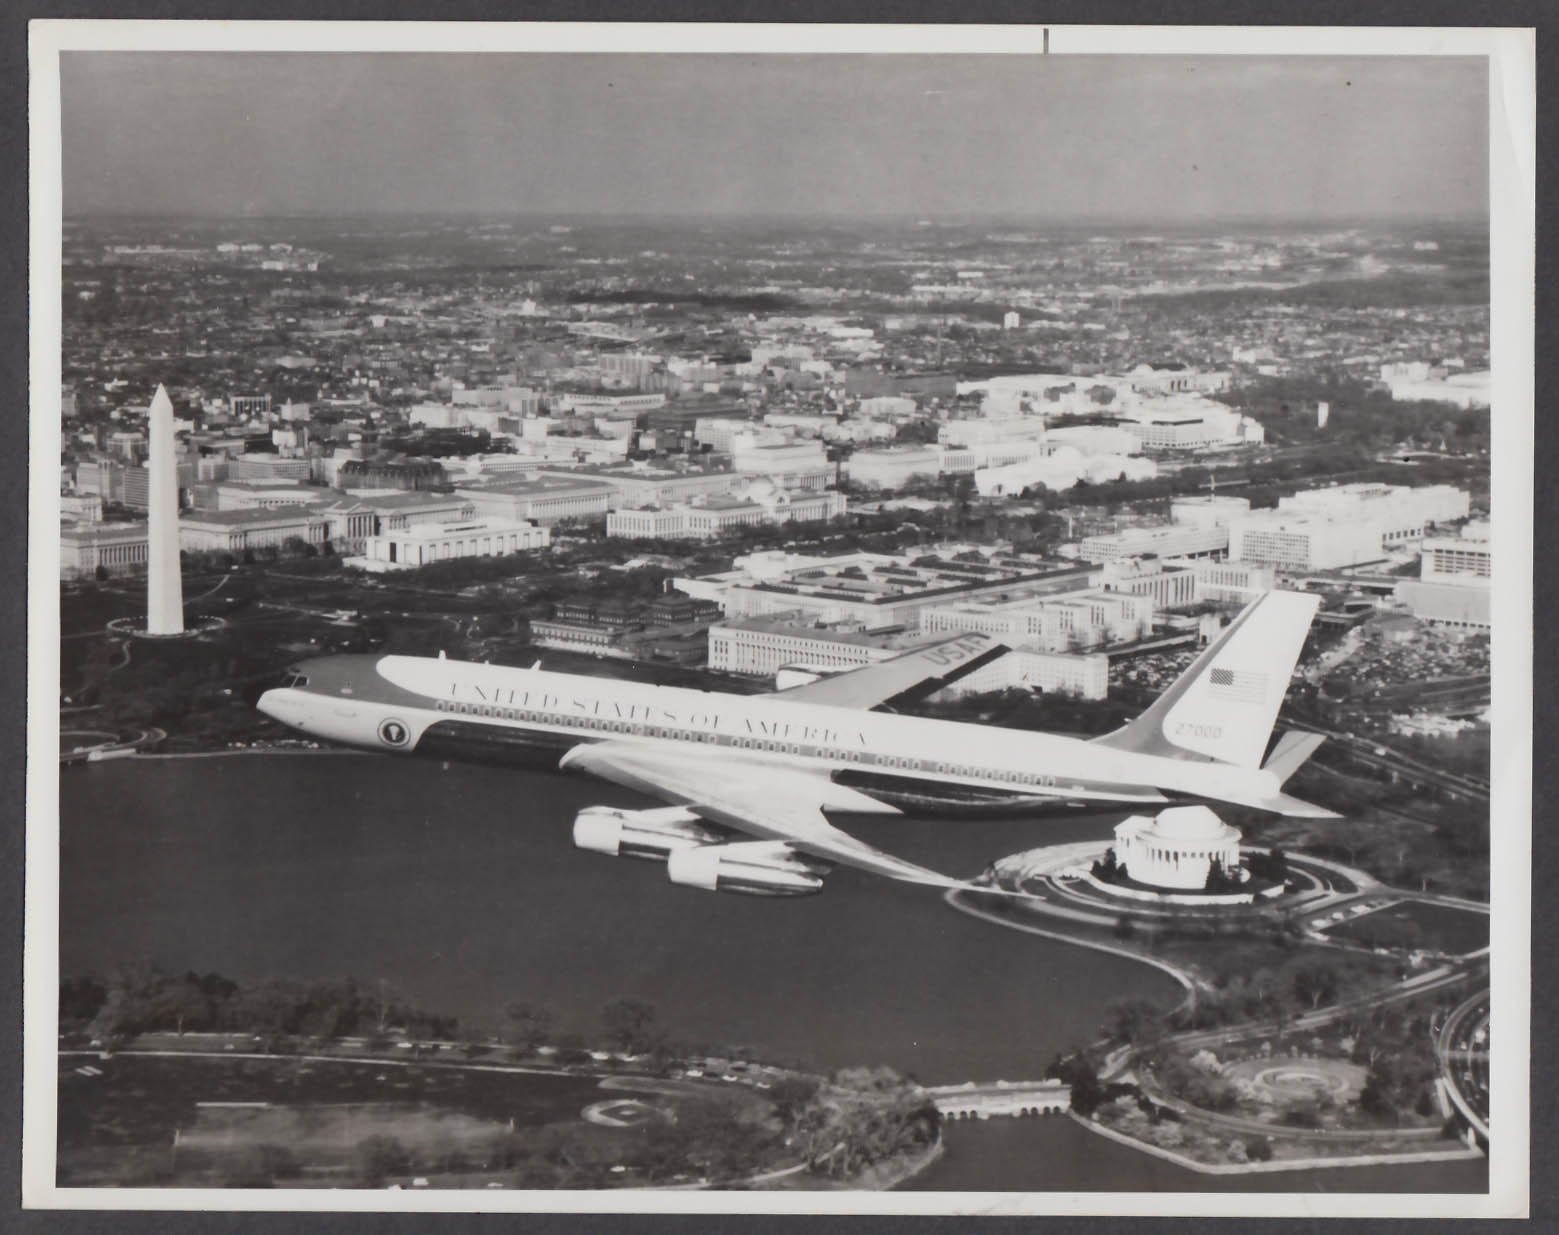 Image for VC-137 Spirit of 76 Air Force One over Washington DC 8x10 photo